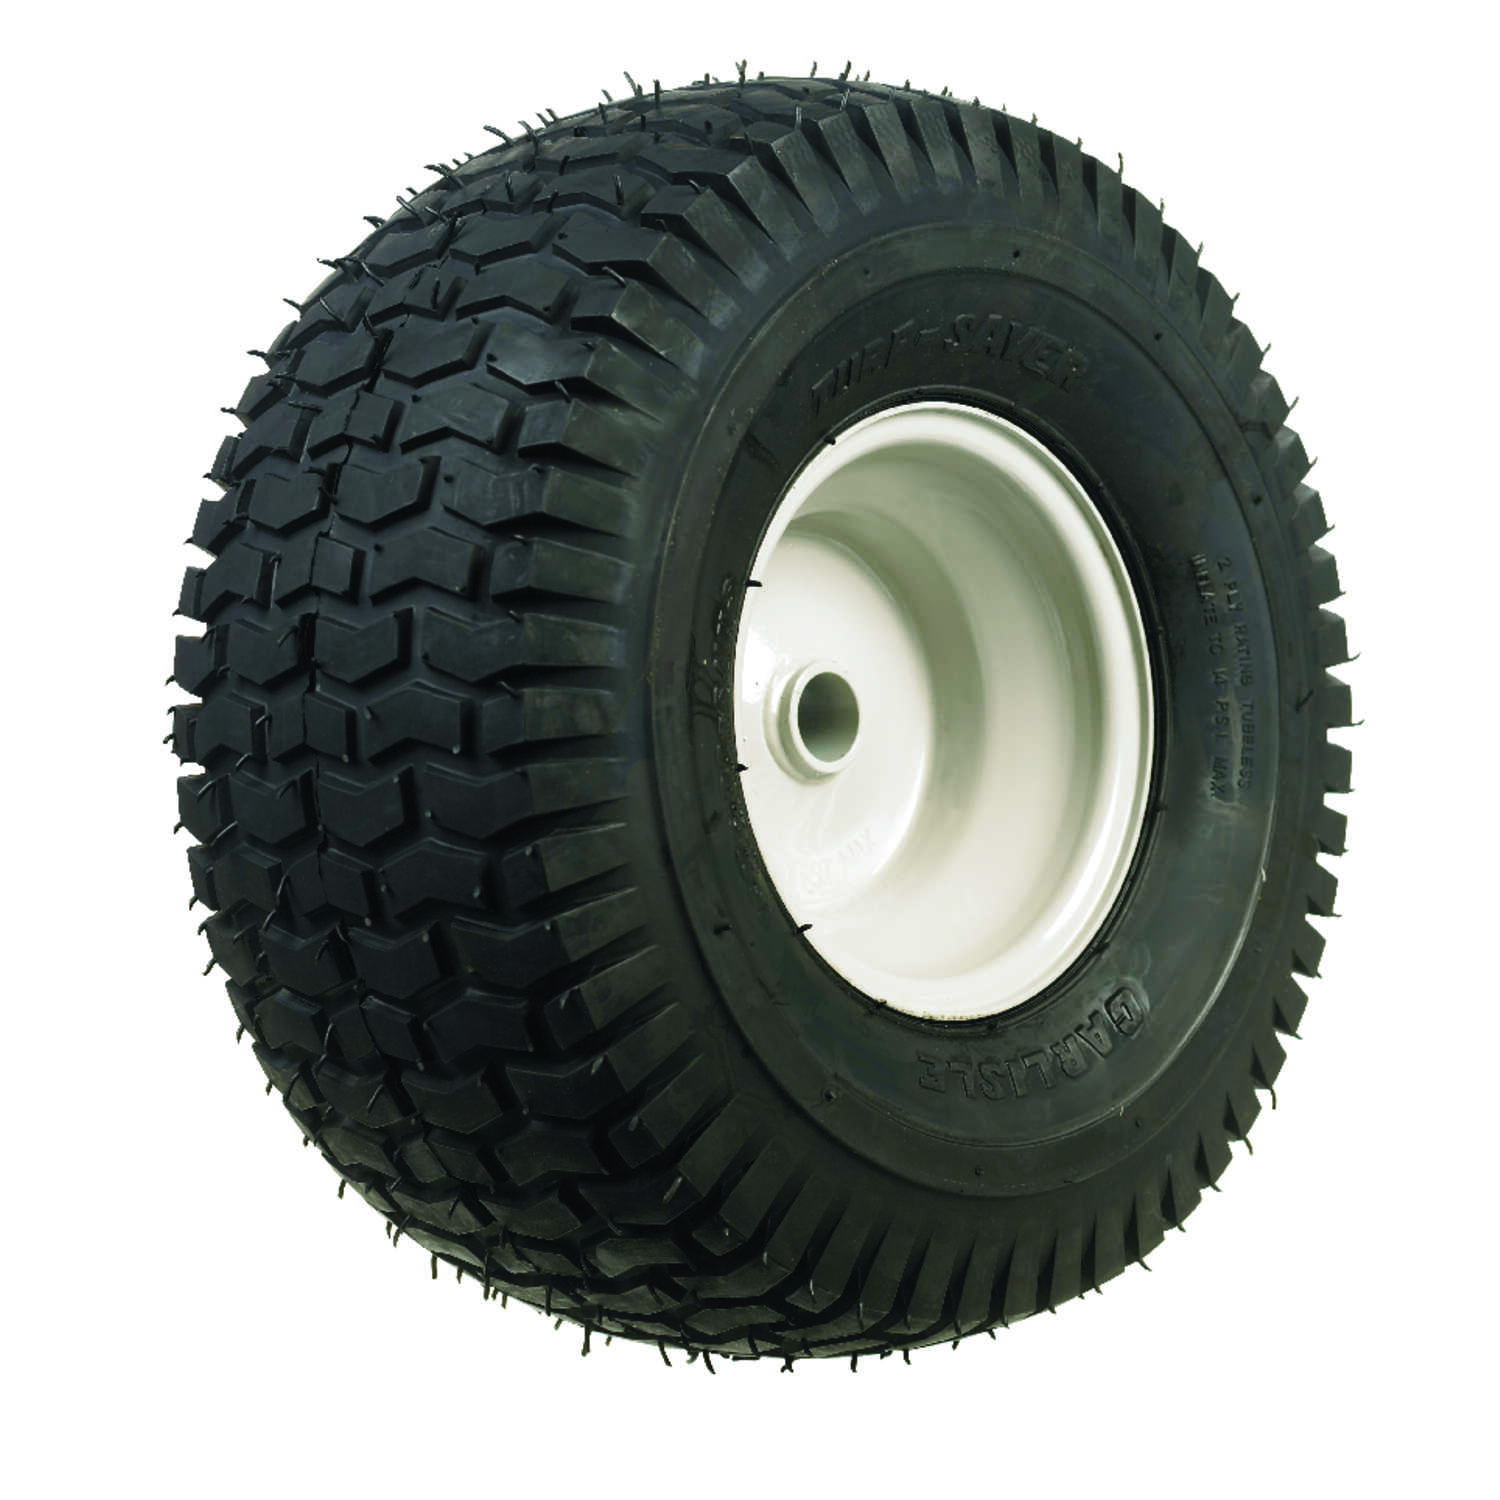 Arnold  Lawn Tractor Front  Steel  6 in. W x 15 in. Dia. 300 lb. Lawn Mower Replacement Wheel